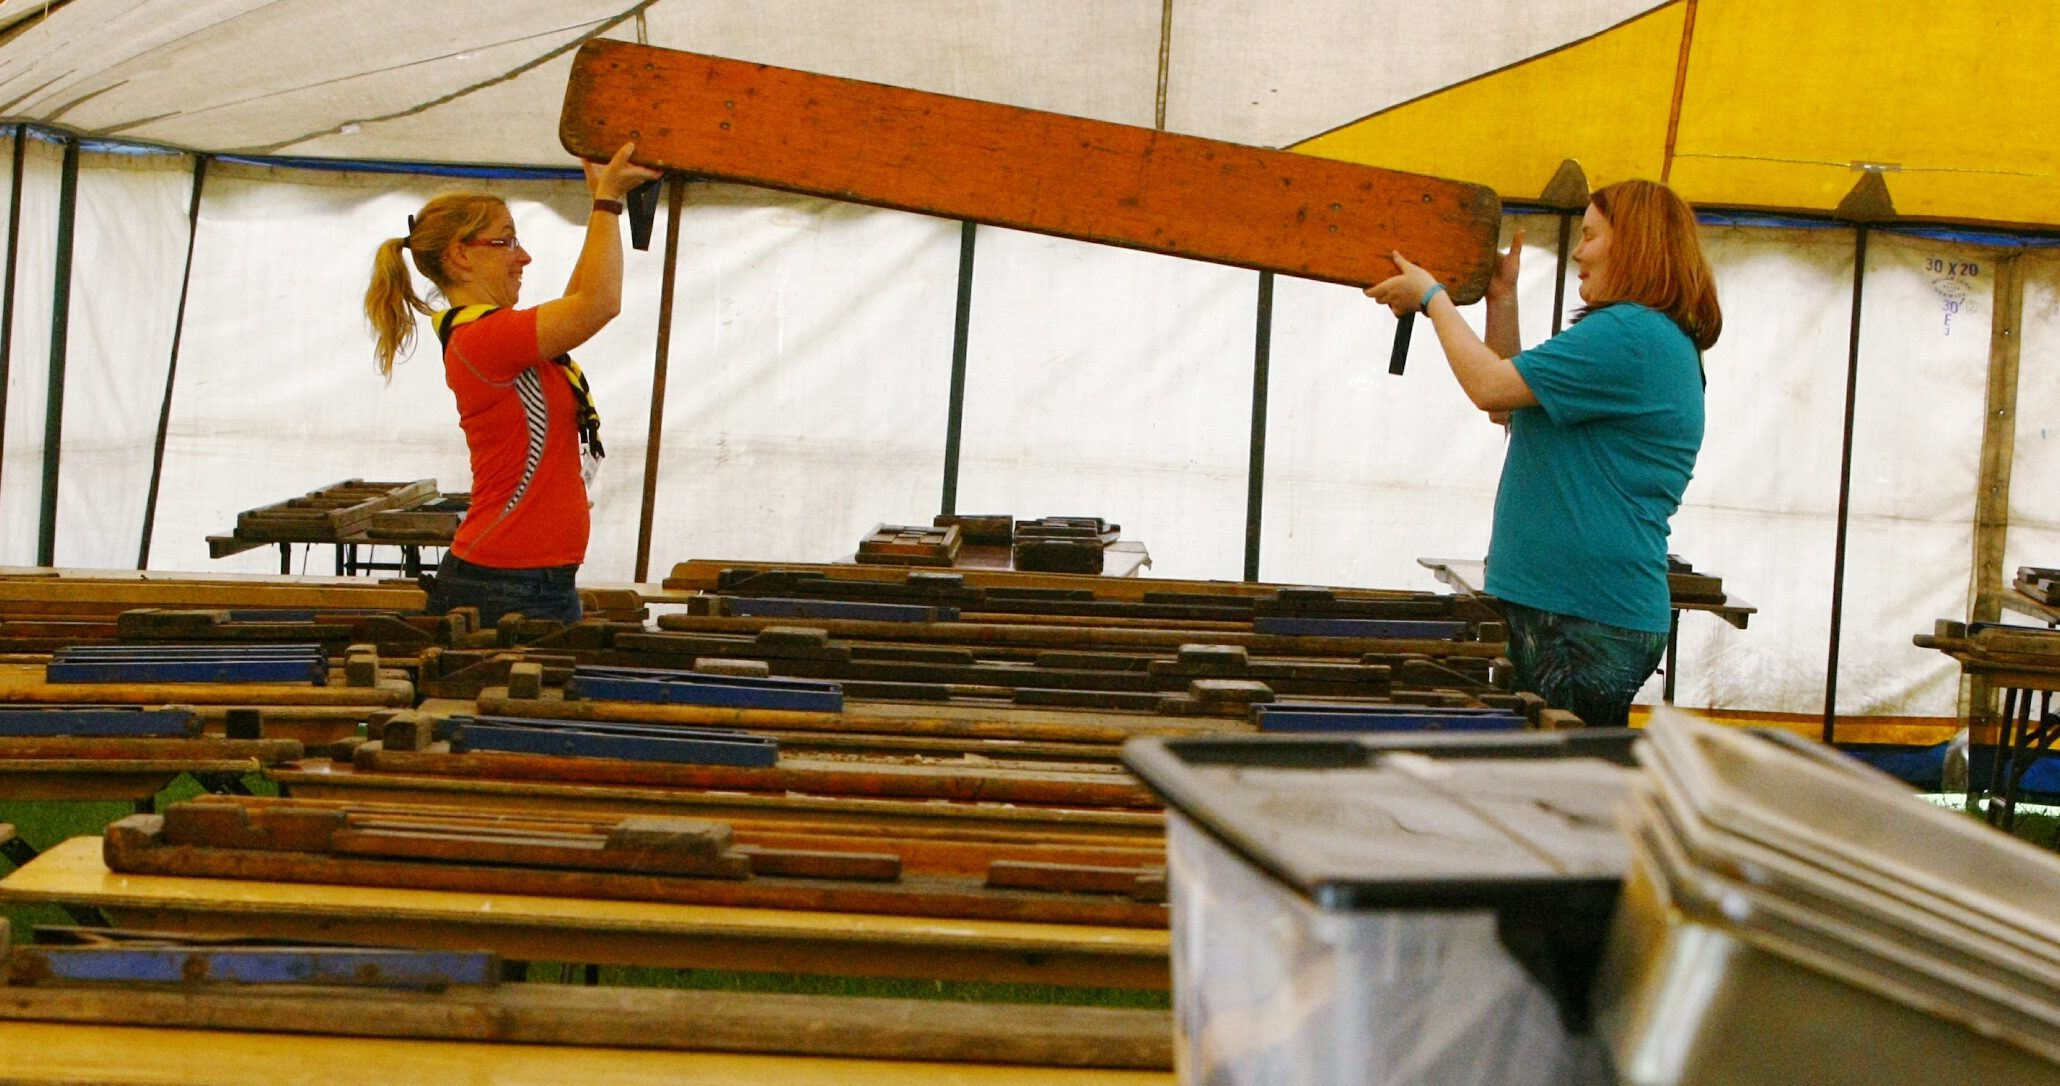 Lisa Finn, left, and Amanda Swan helping to set out the dining tent for the camp at Blair Atholl.